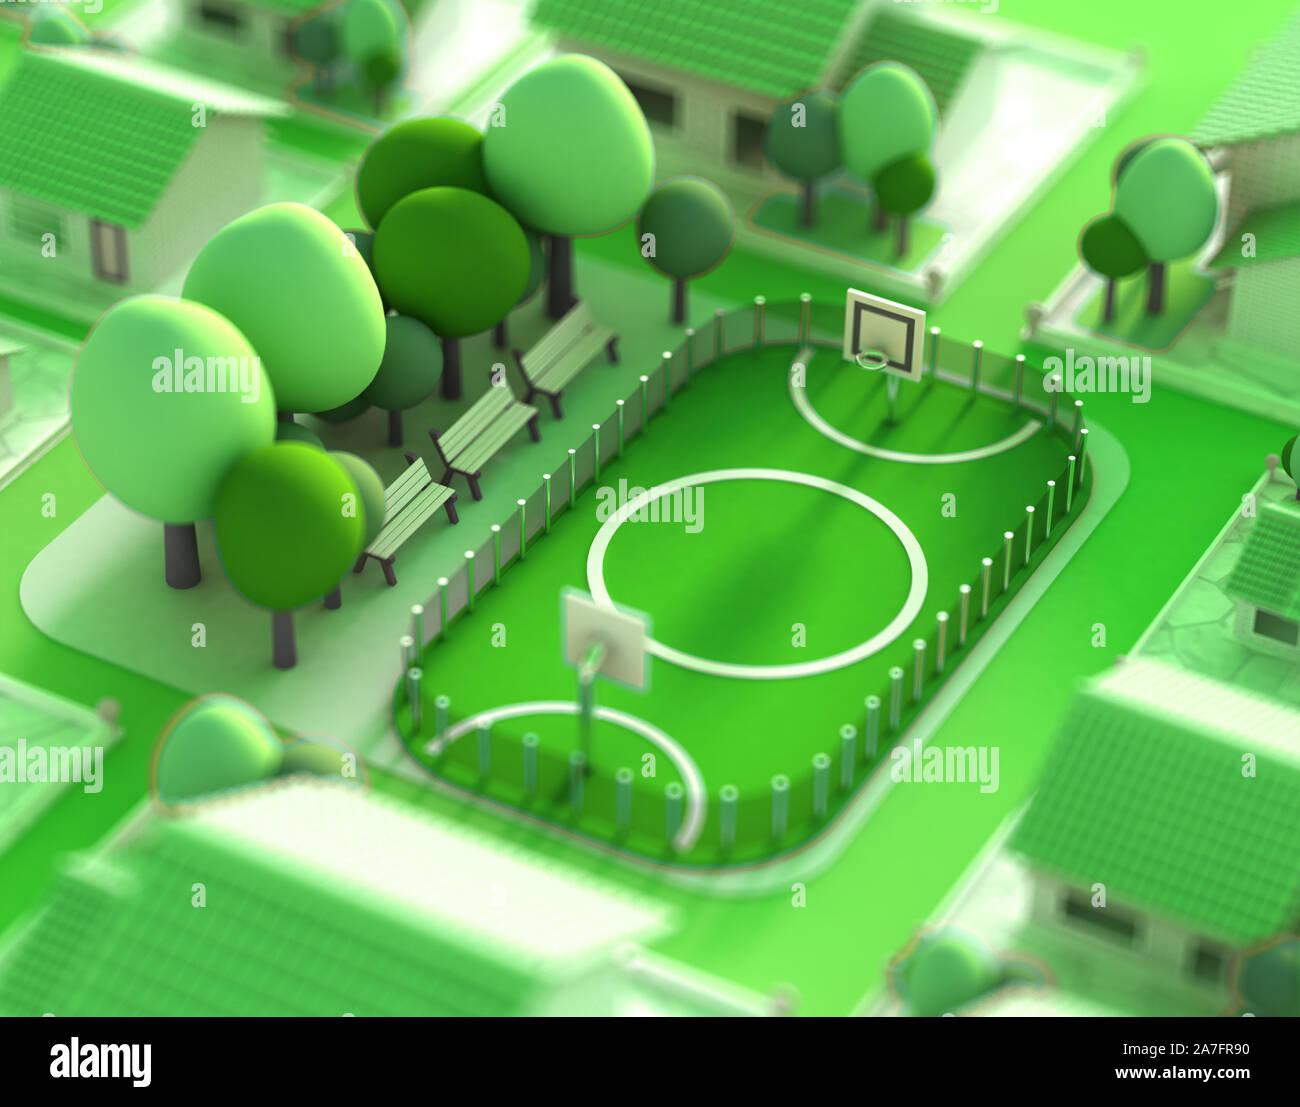 A model of a sports field with a football field.  3d rendering, 3d illustration. Stock Photo